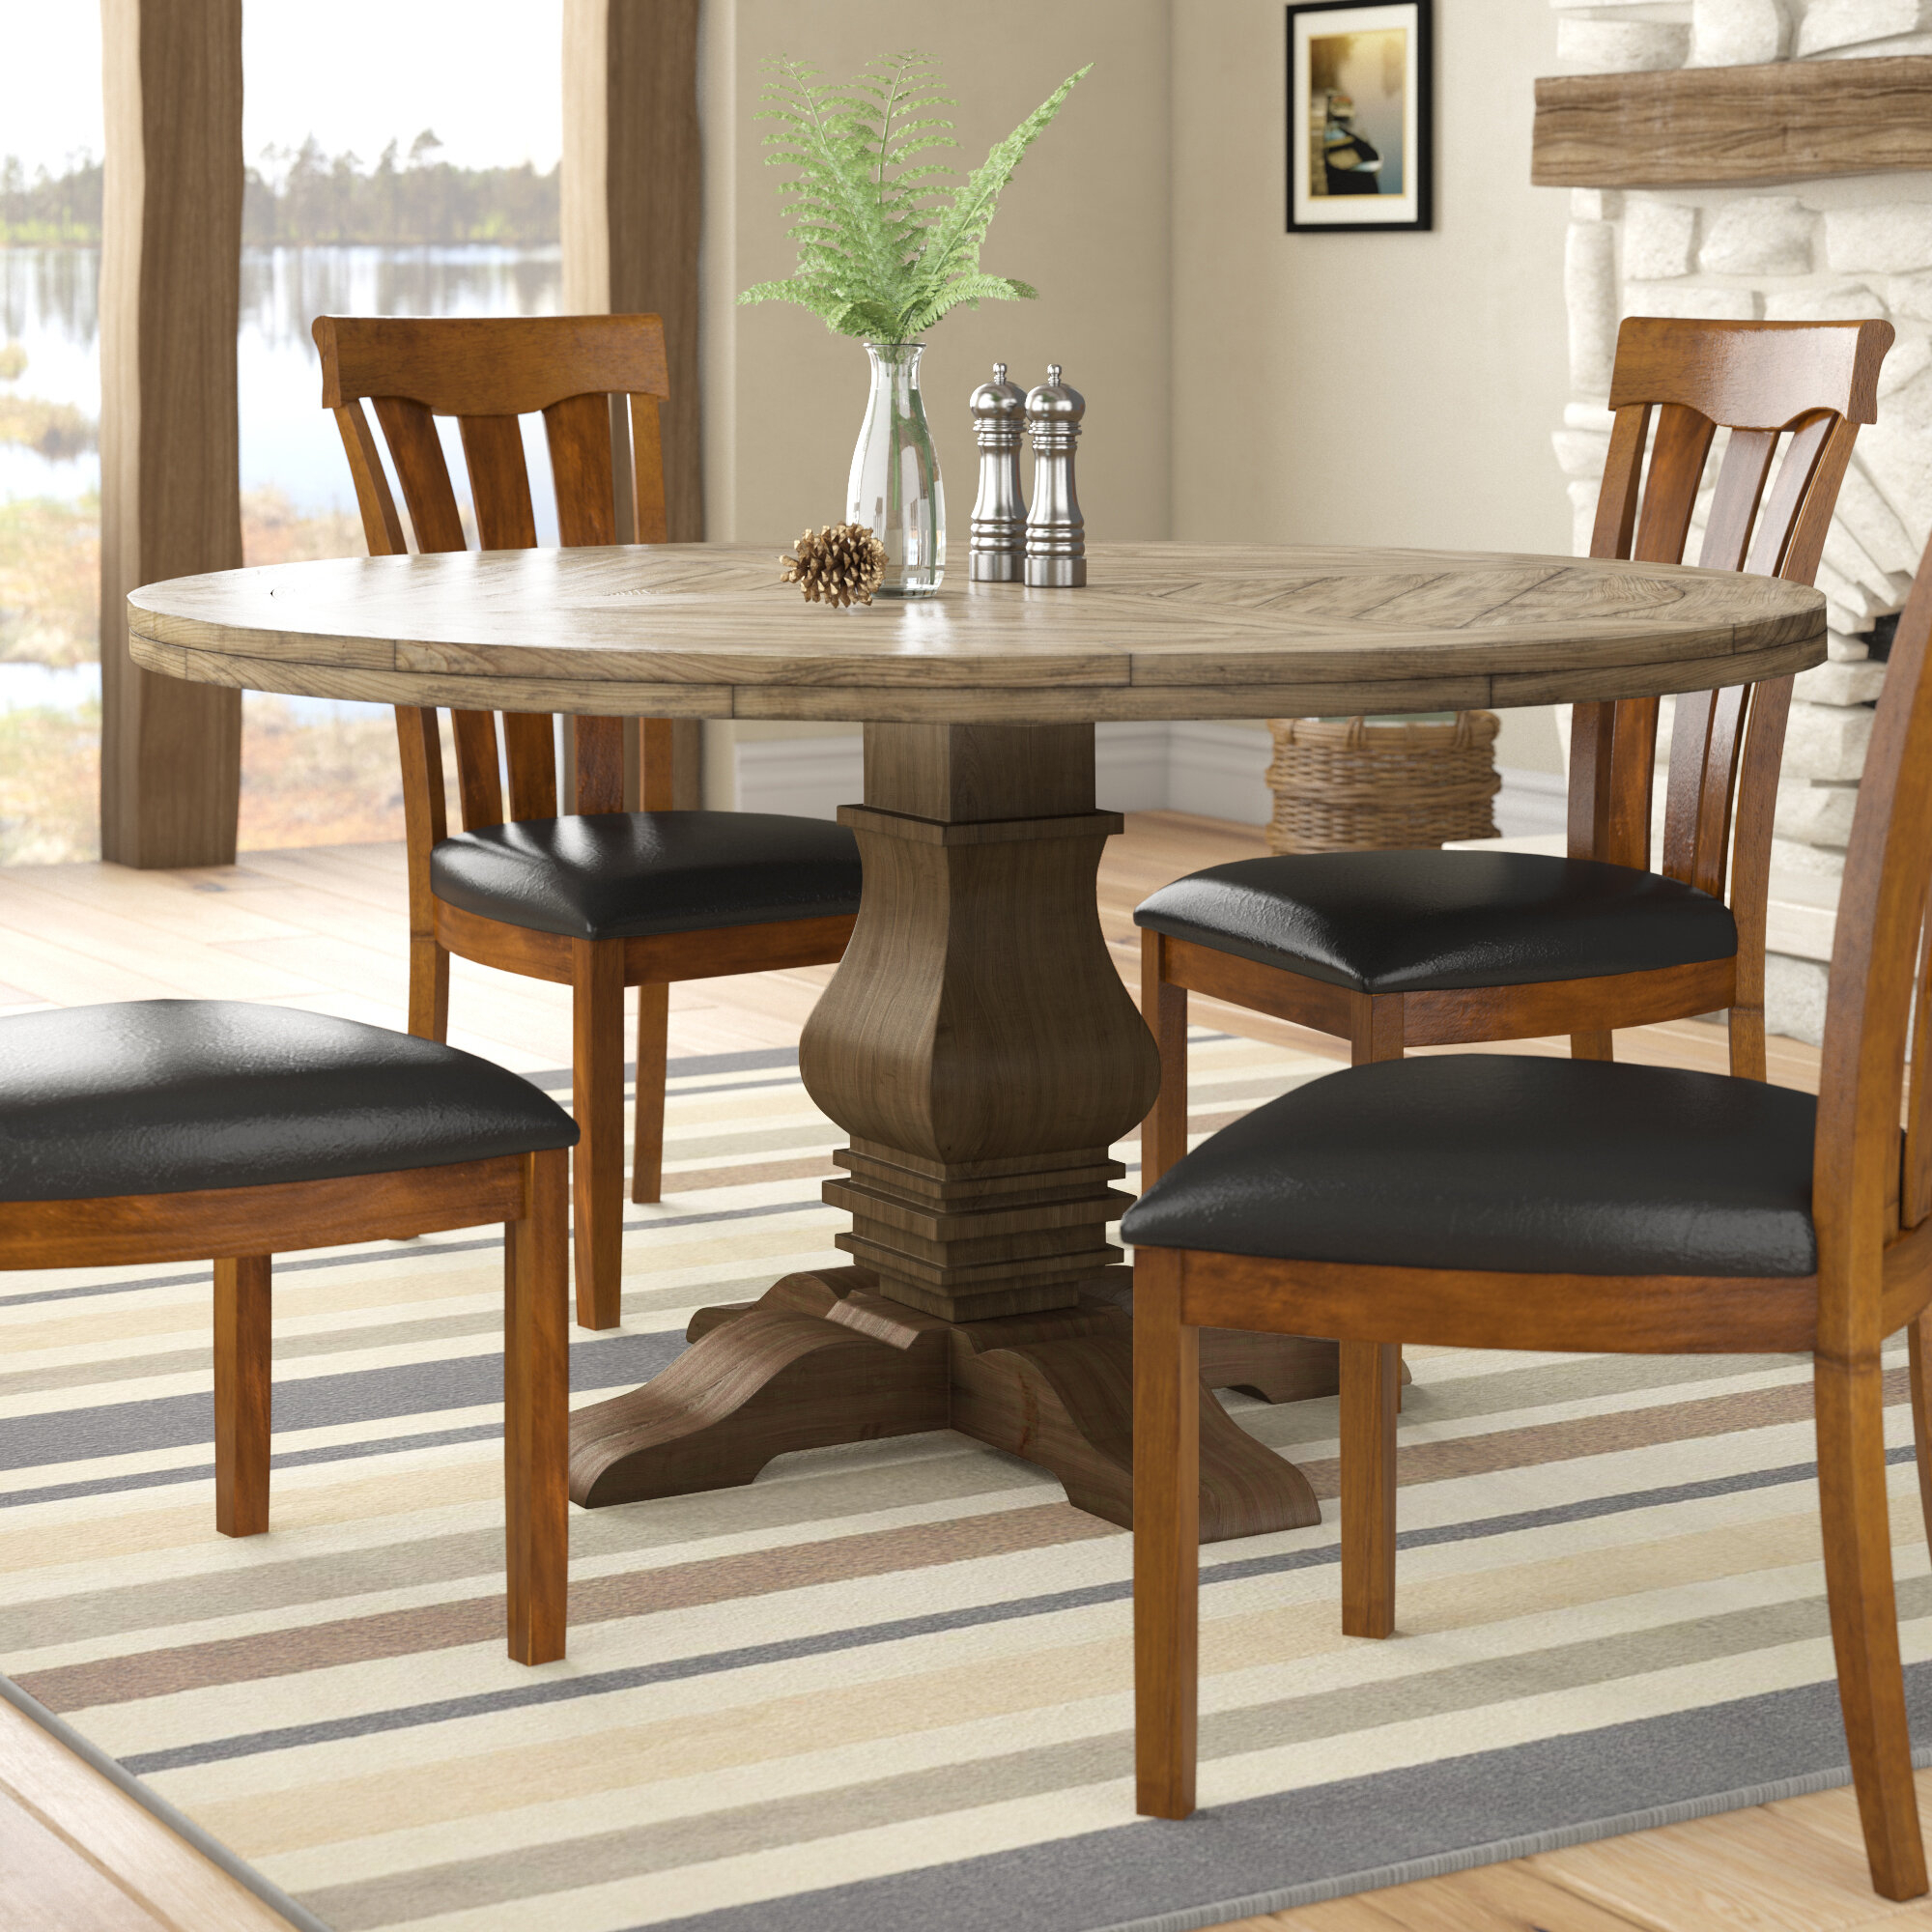 Magaw Solid Wood Dining Table Within Most Current Rae Round Pedestal Dining Tables (View 7 of 25)